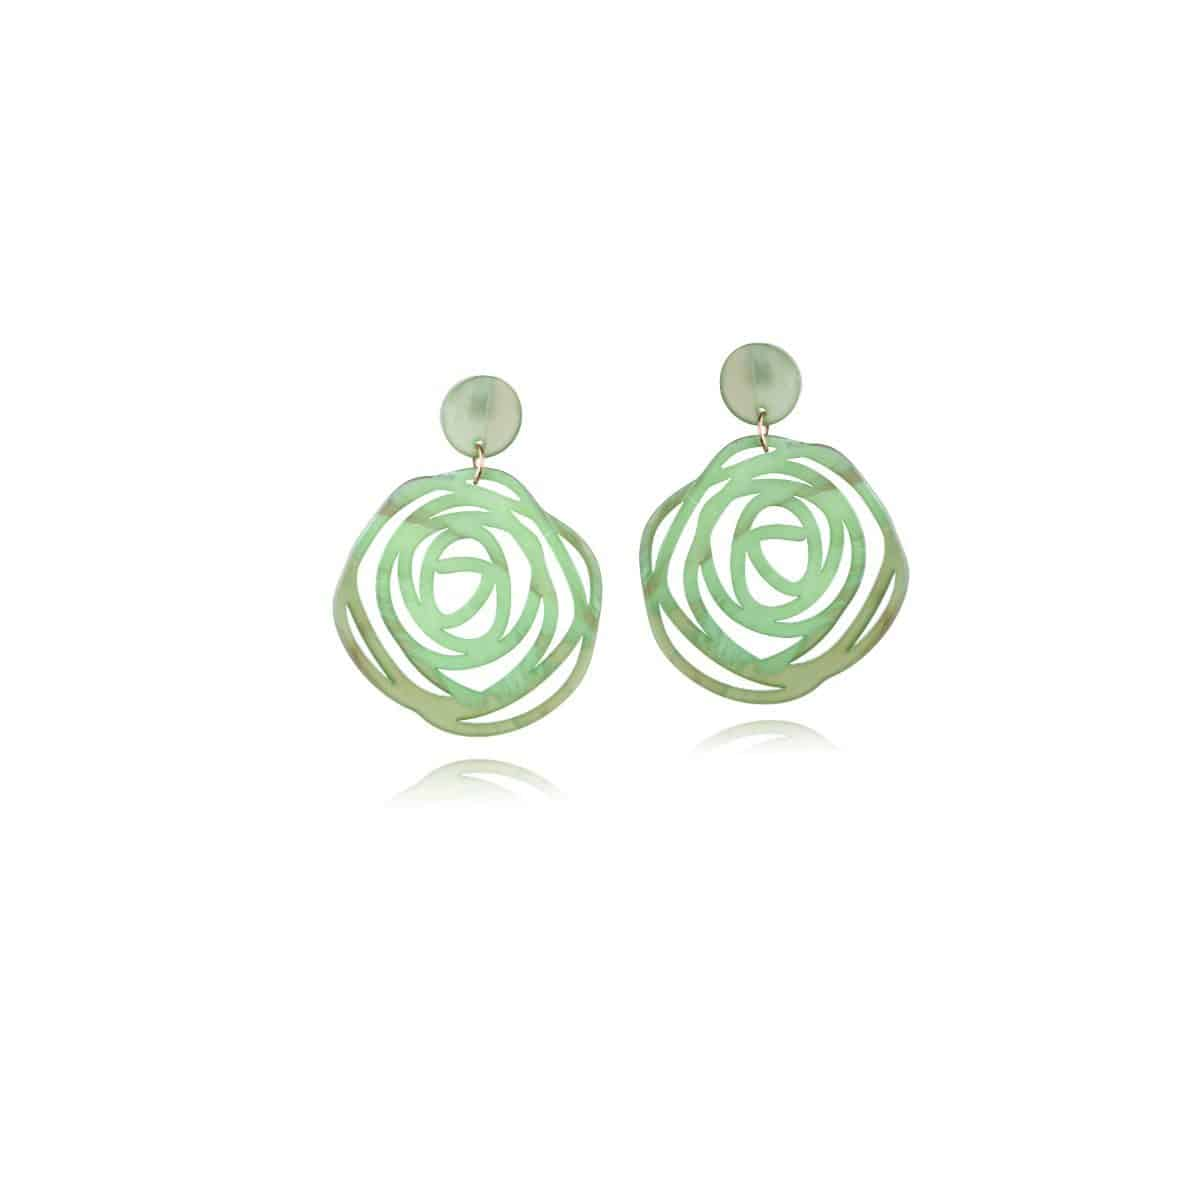 Twister earrings, green resin with openwork circular shape.